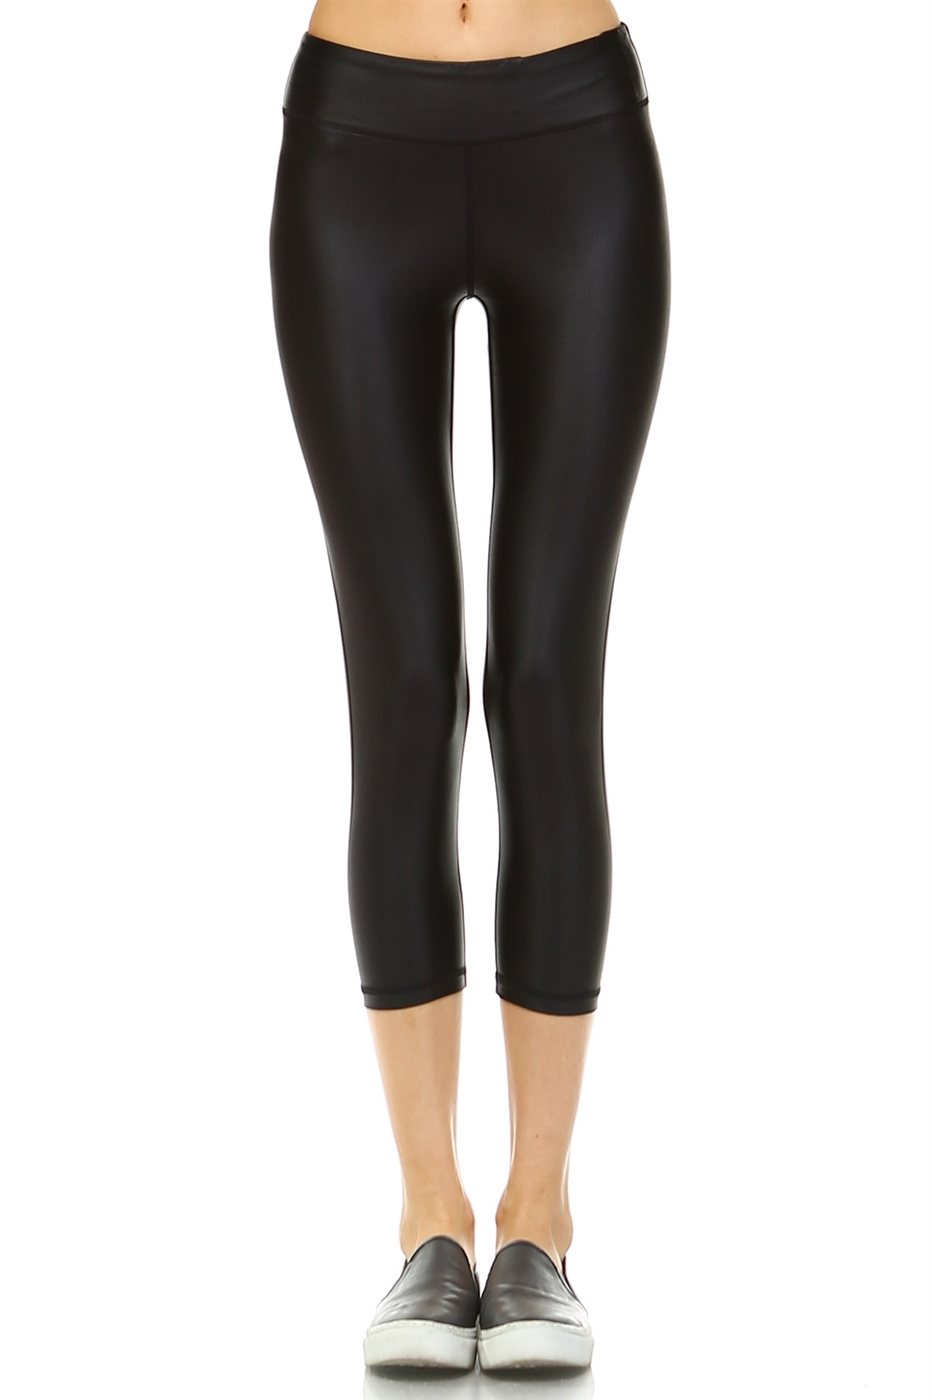 PU CAPRI LEGGINGS - orangeshine.com